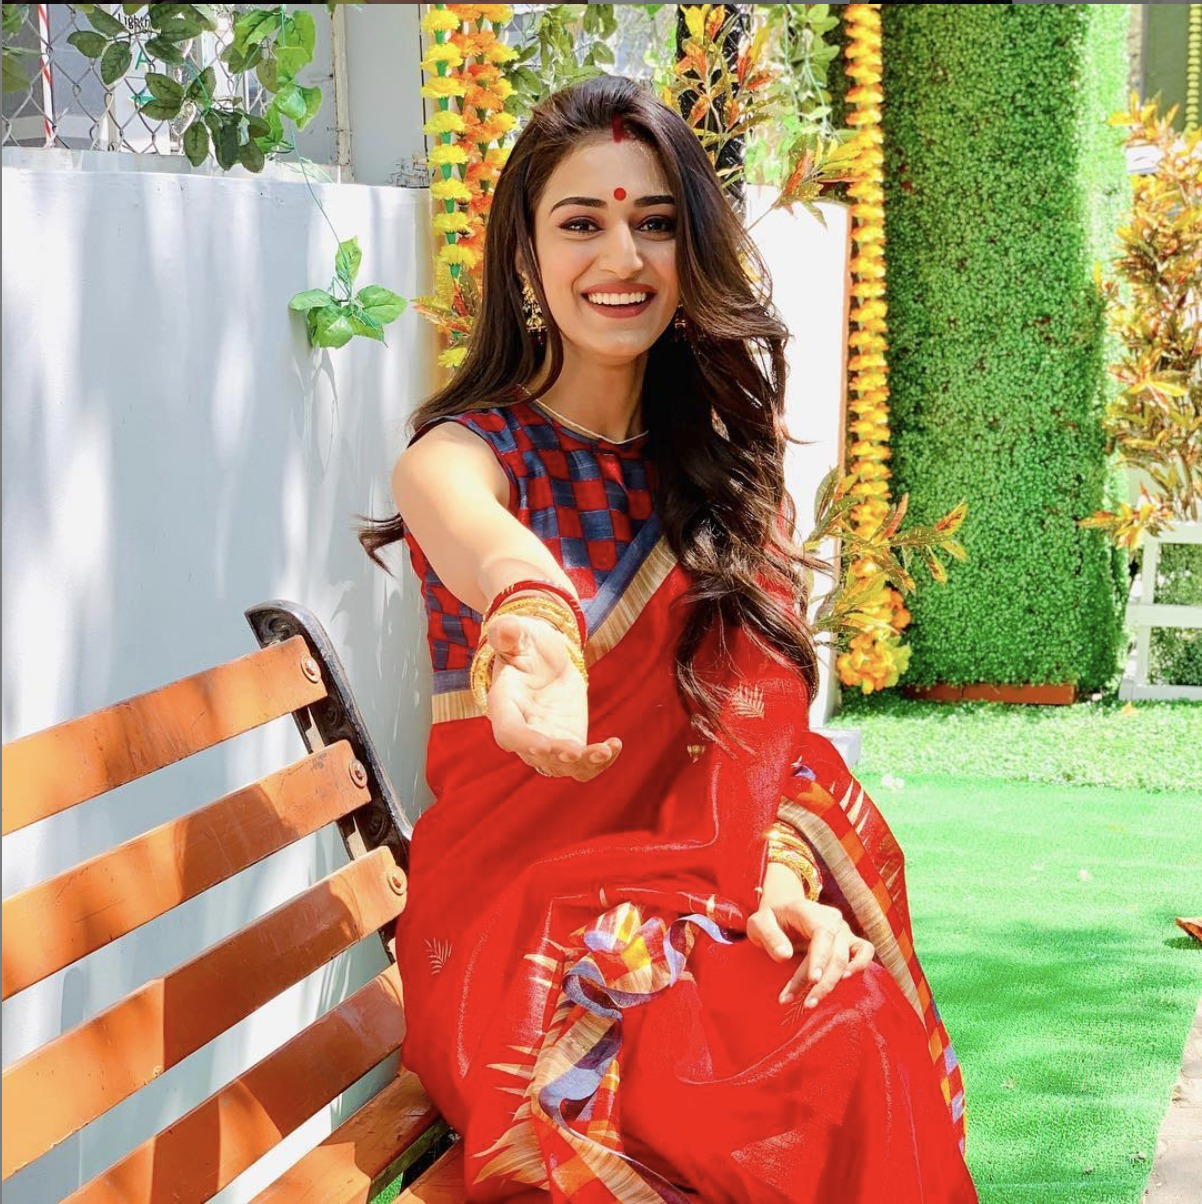 PHOTOS: Hina Khan, Shivangi Joshi, Erica Fernandes's On-Screen Saree With Sindoor Looks That Caught Our Attention 4